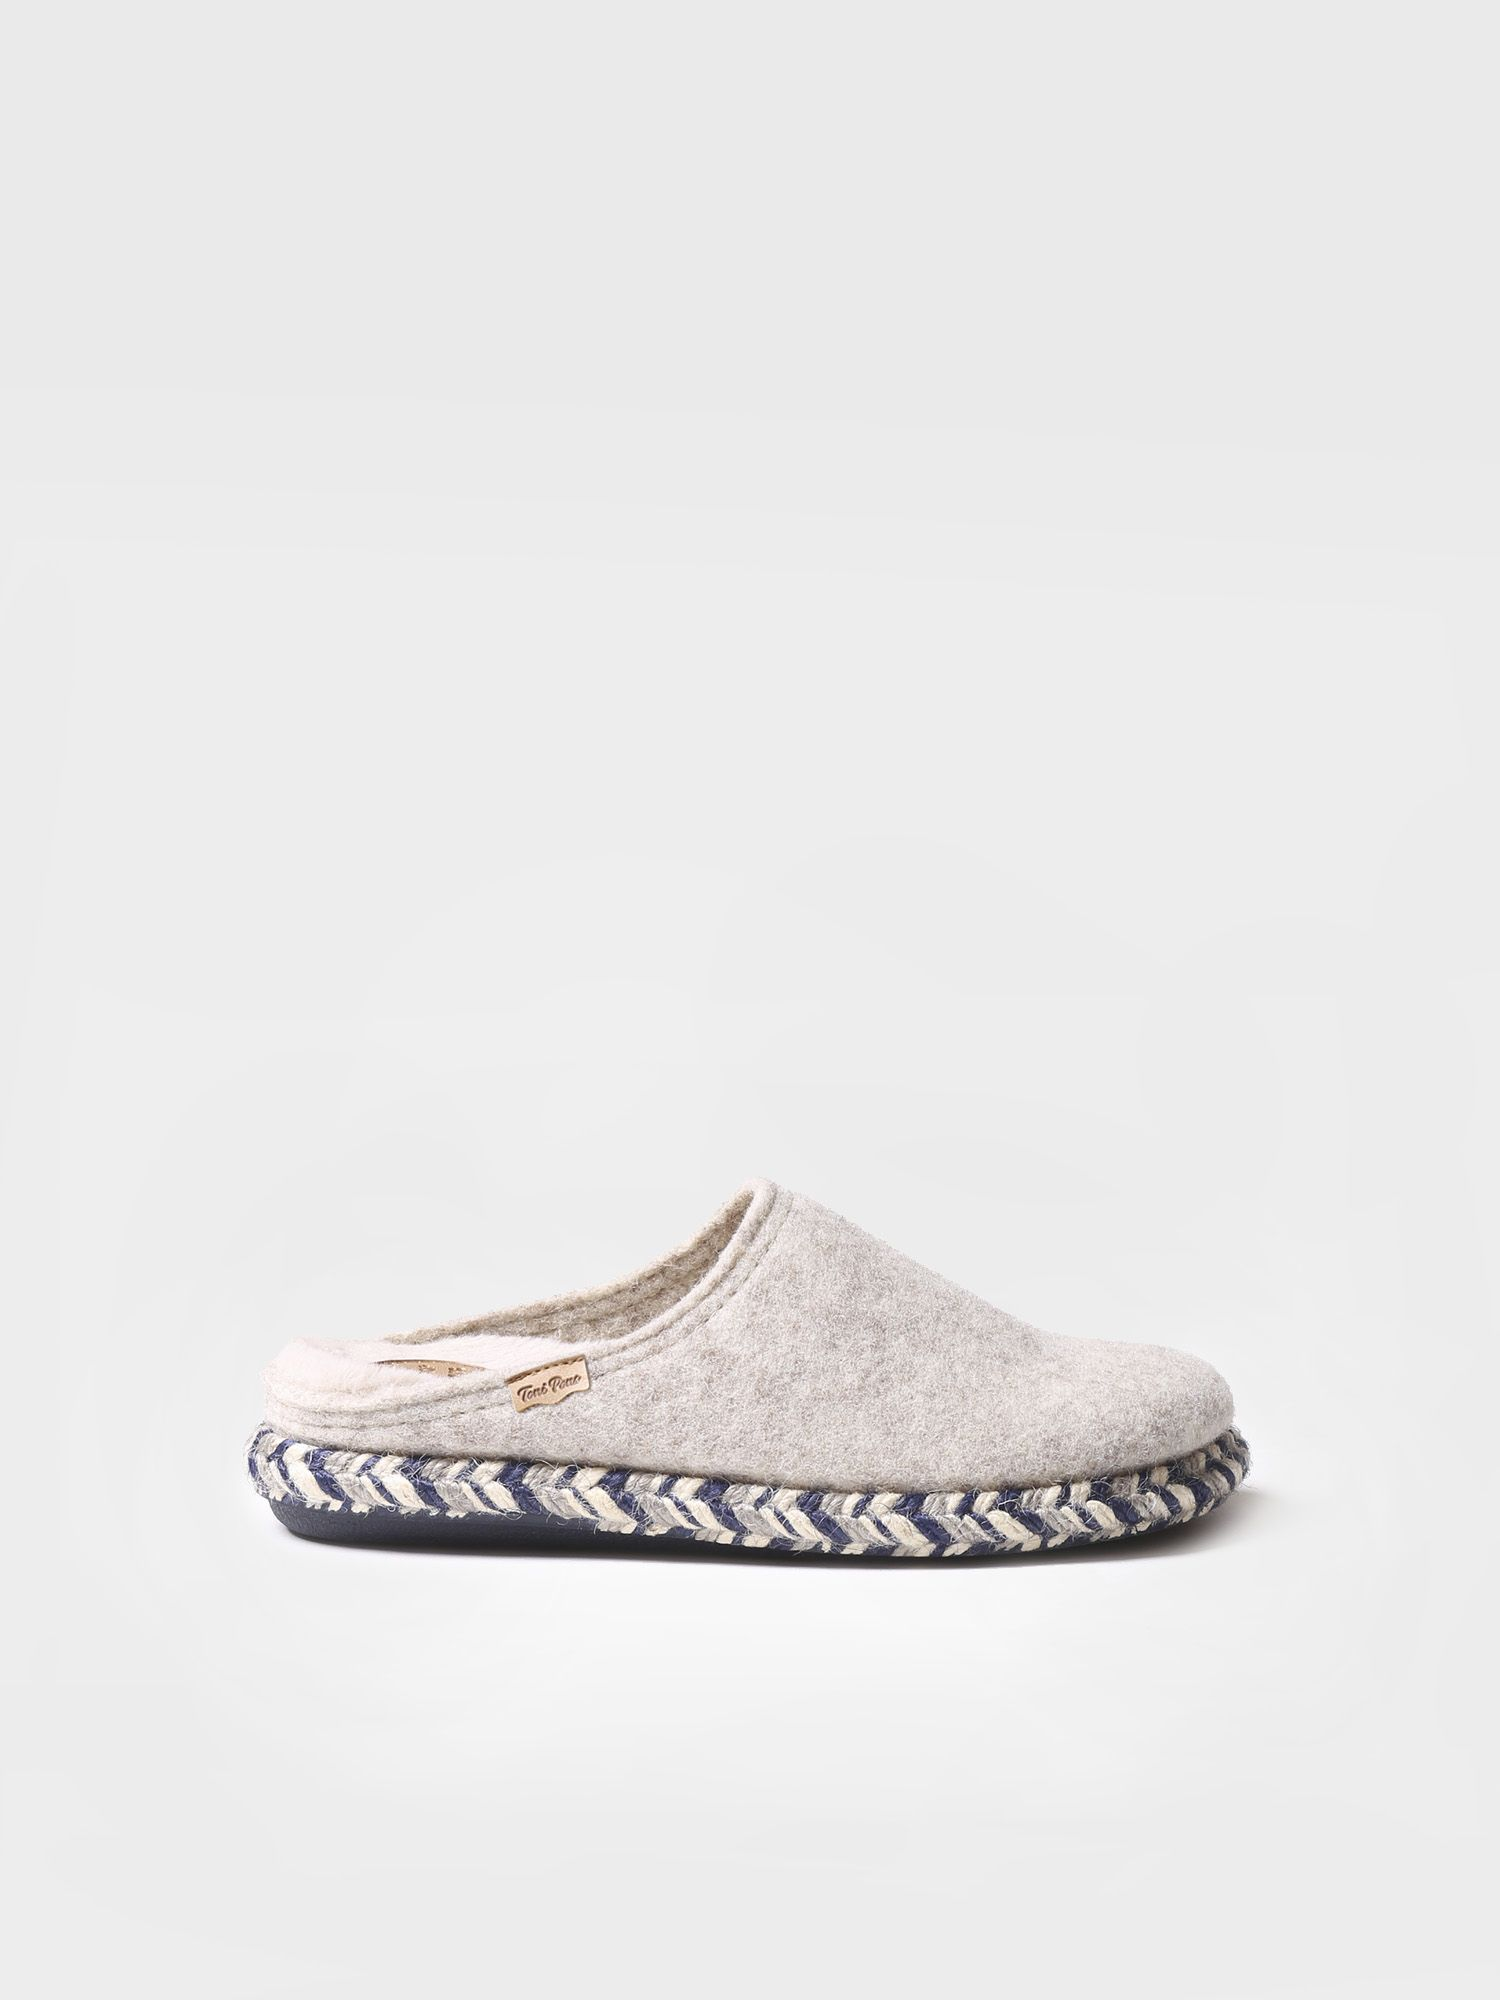 Slipper for woman made of felt - MIRI-FP